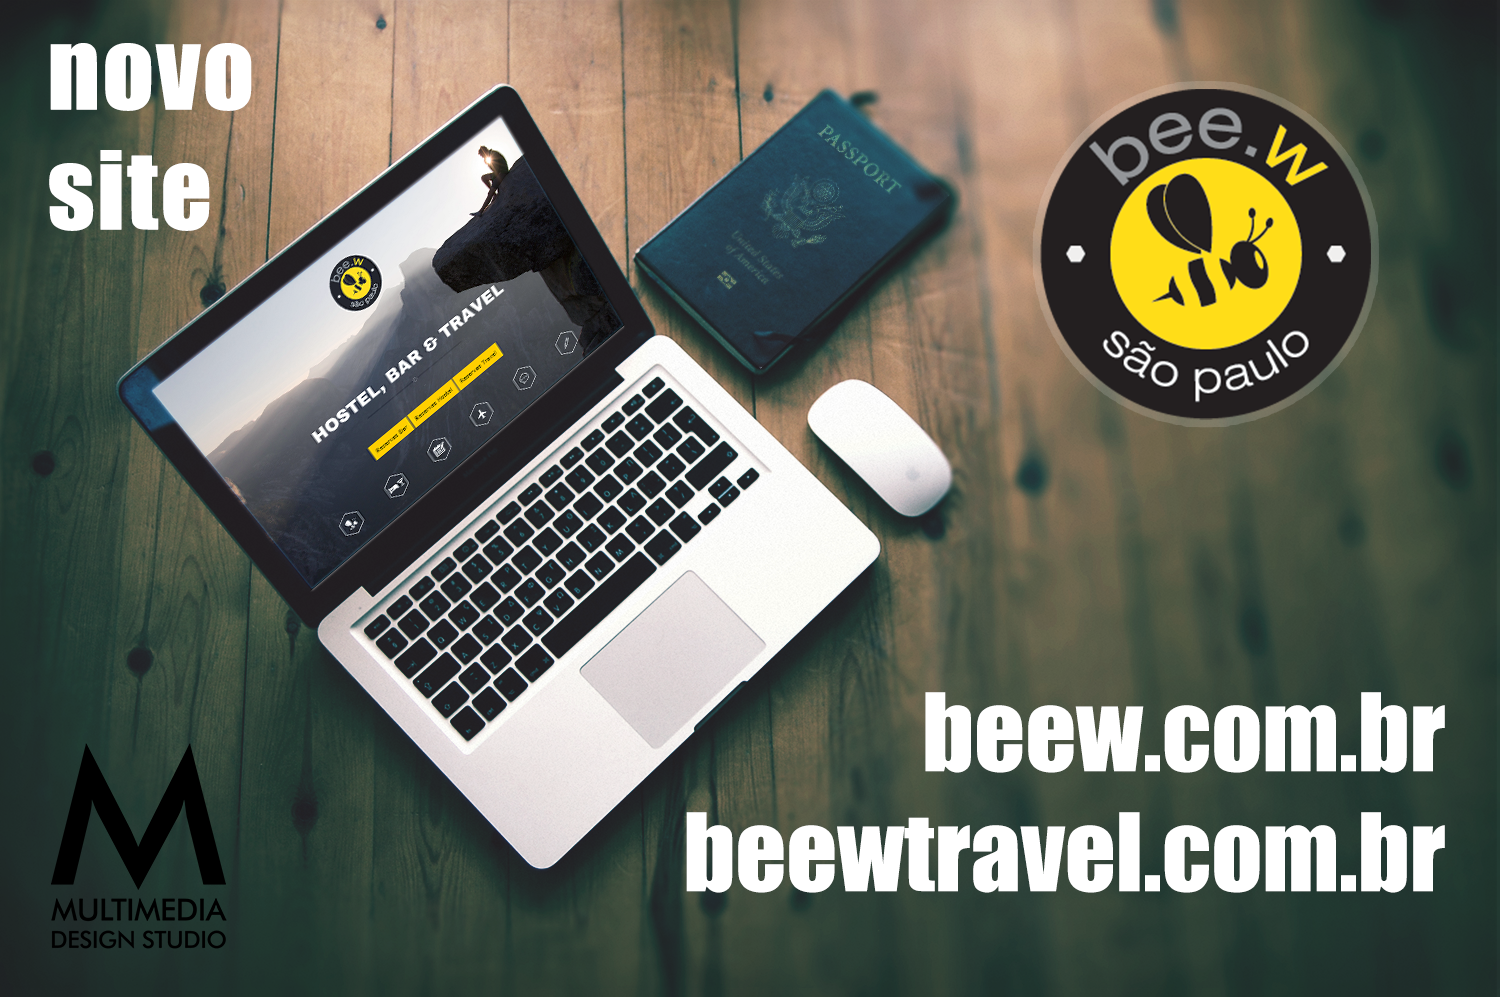 BEE.W HOSTEL, BAR & TRAVEL